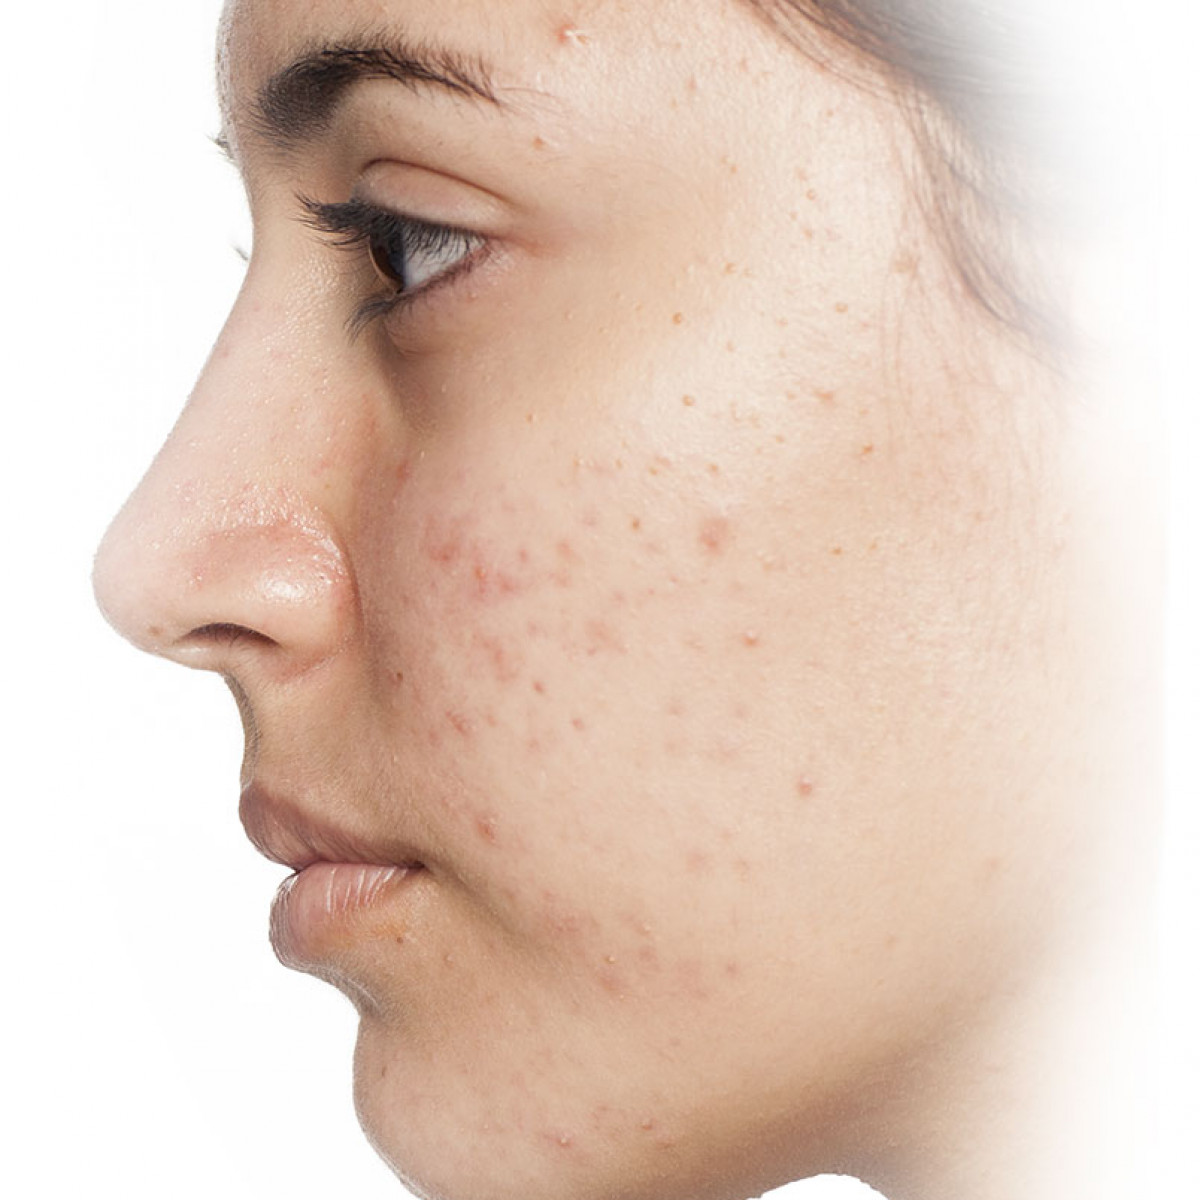 Adult acne systems